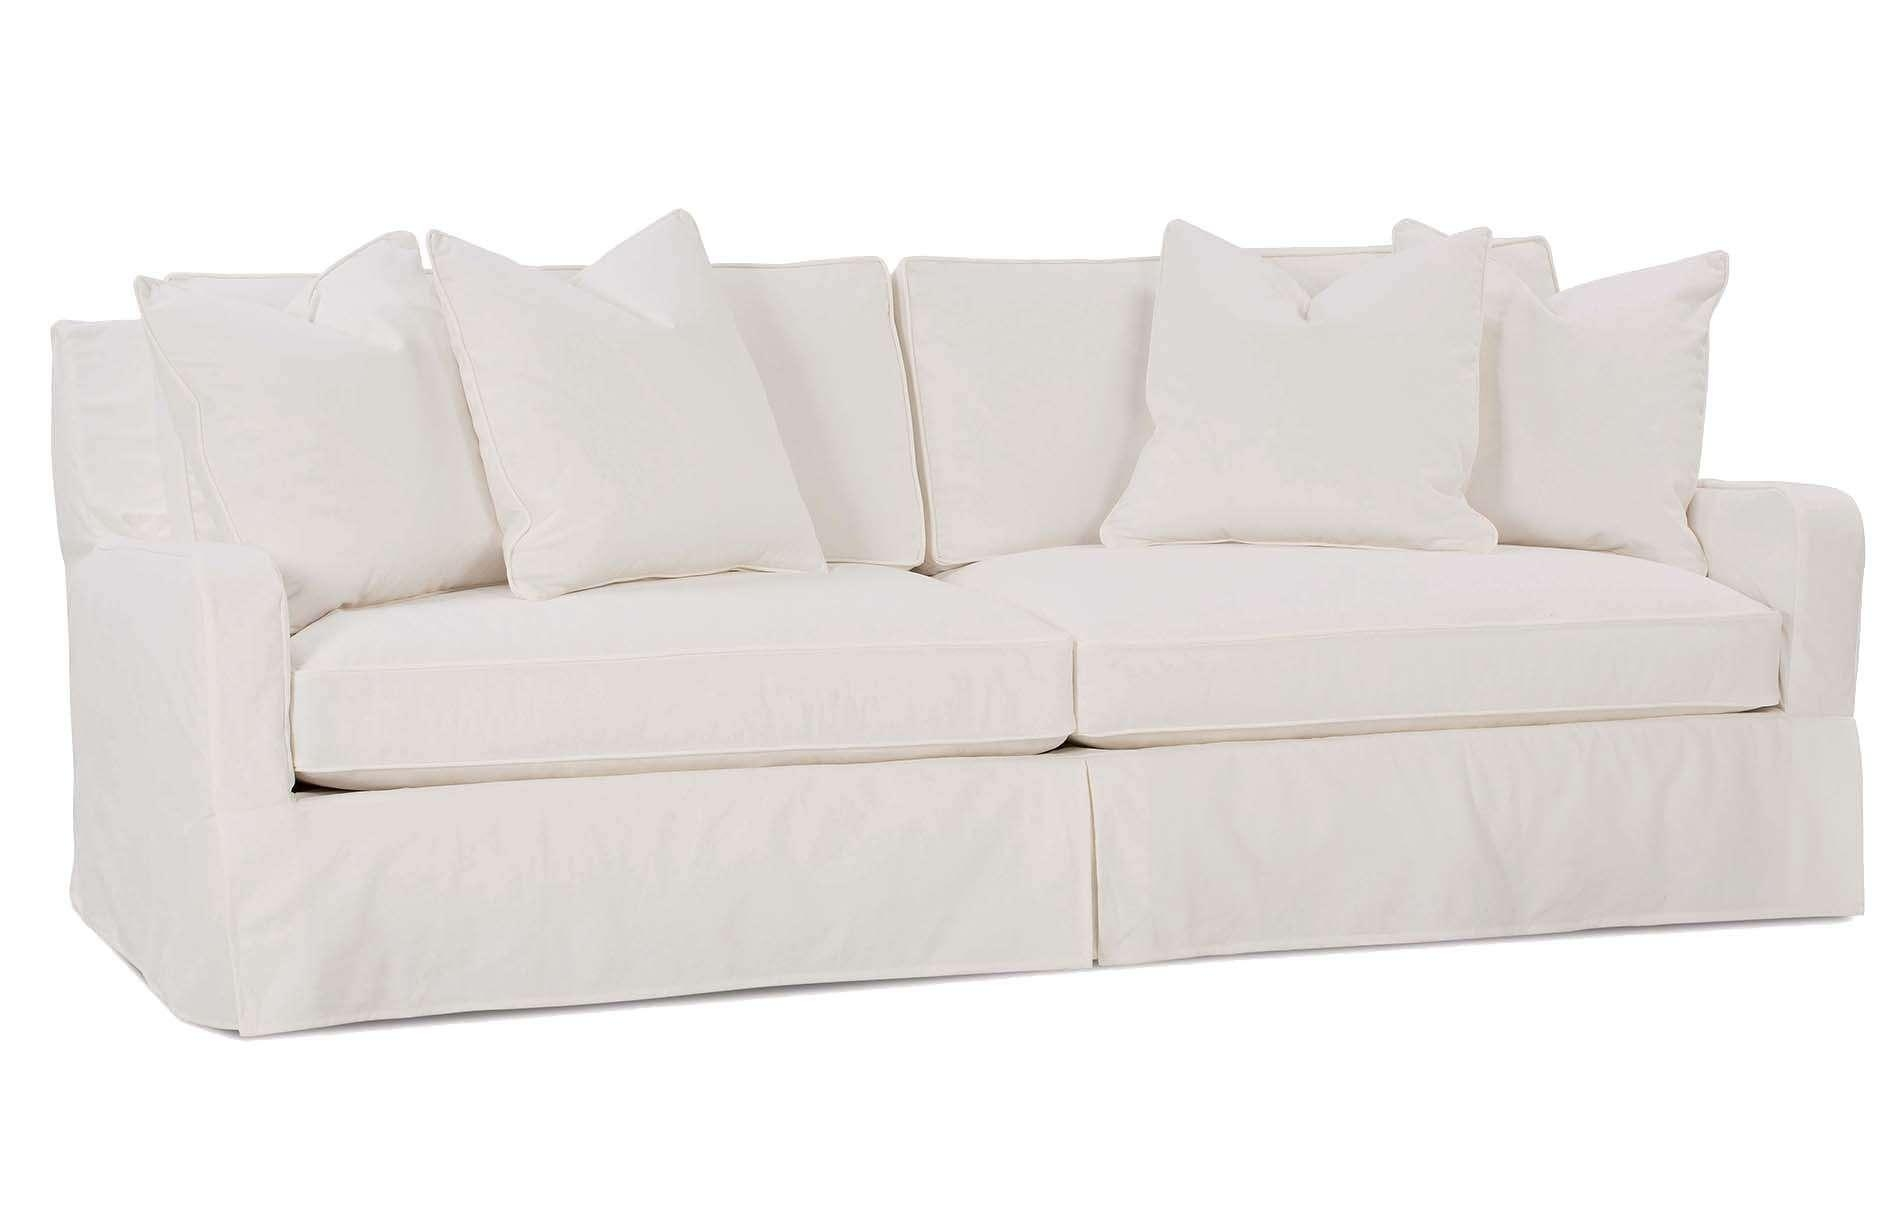 Sofas Center : Slipcover Style Sofa And Loveseat Sets Sofas With Slipcover Style Sofas (Image 17 of 20)